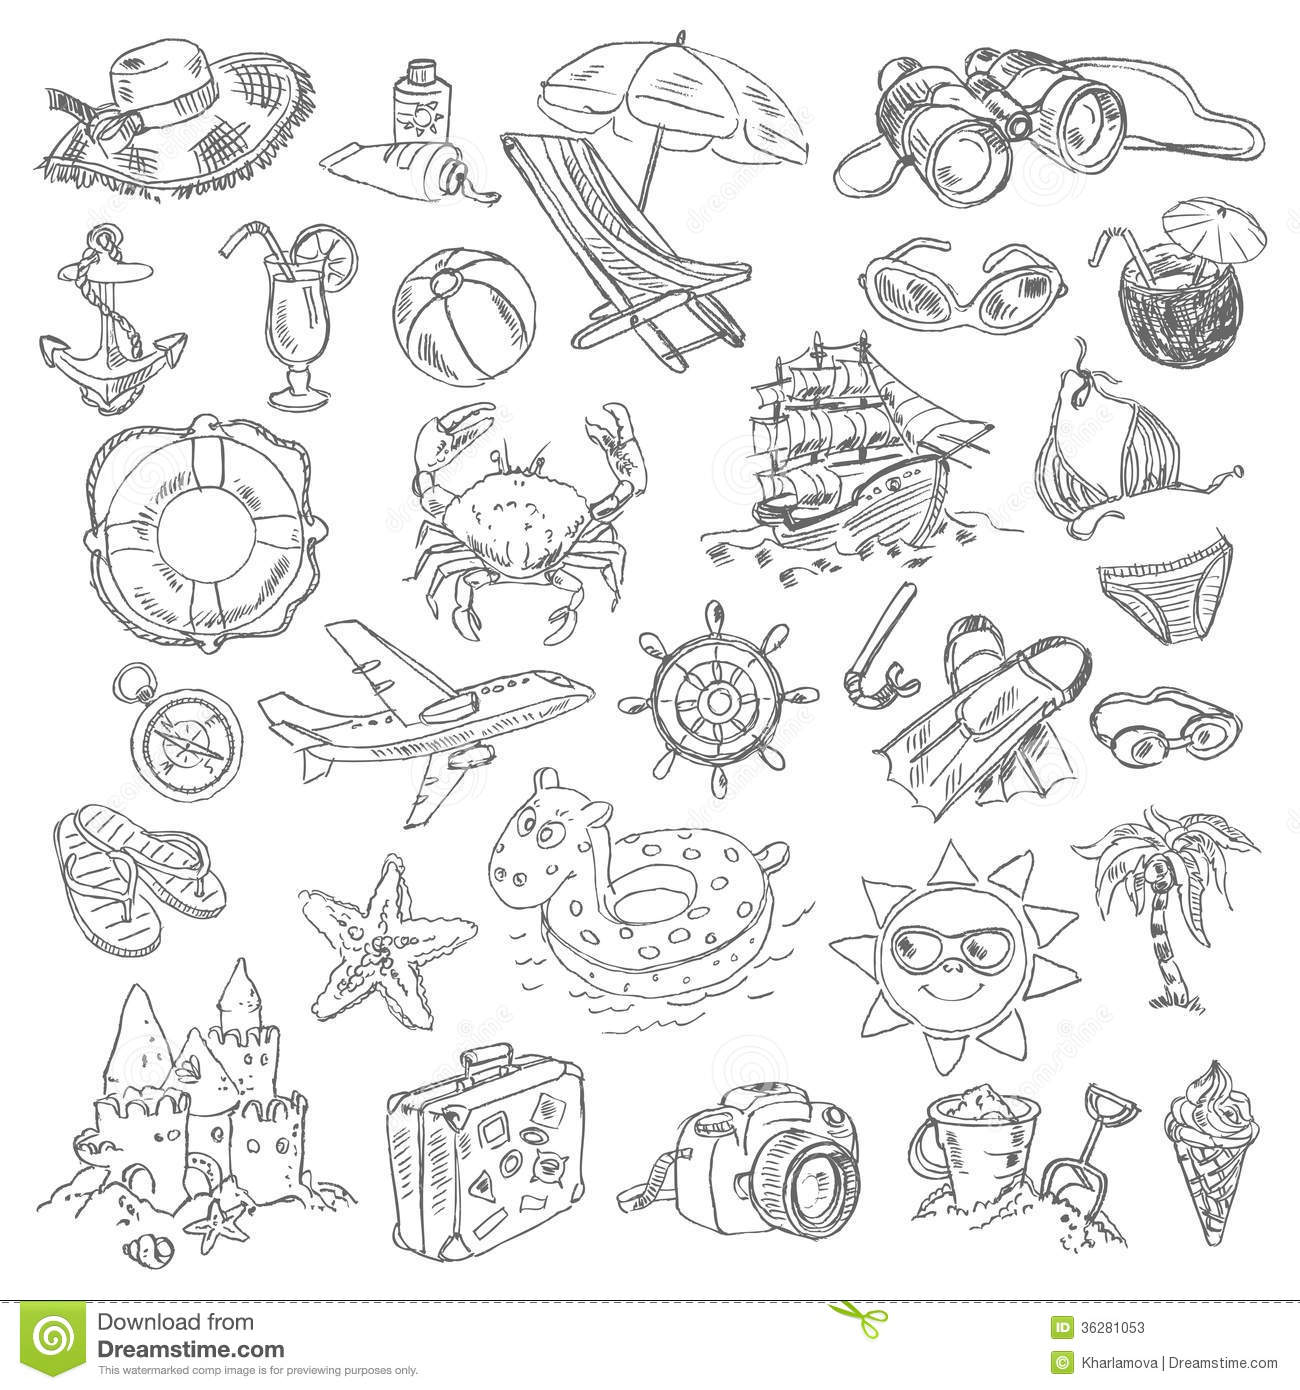 Uncategorized Drawings Of Summer freehand drawing summer vacation stock image 36281053 vacation